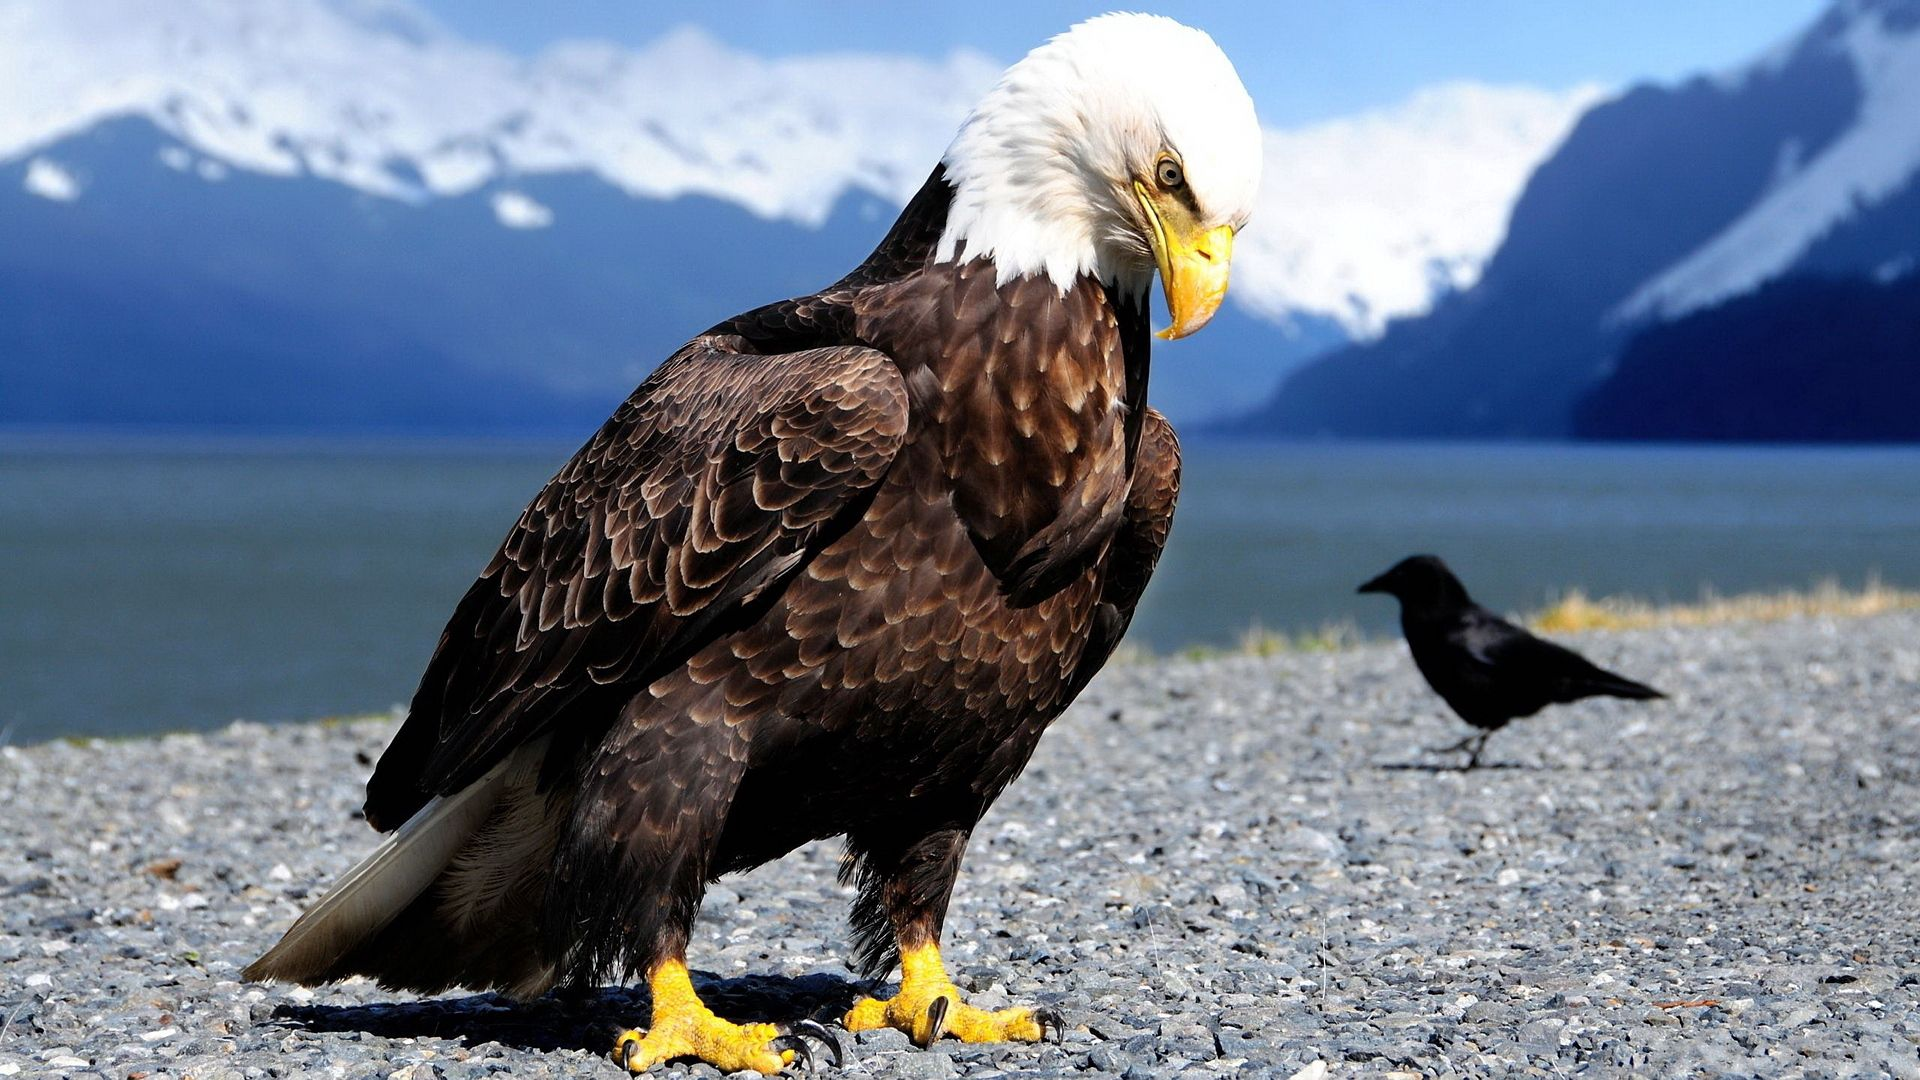 53114 download wallpaper Animals, Eagle, Crow, Shore, Bank, Predator, Mountains, Birds screensavers and pictures for free